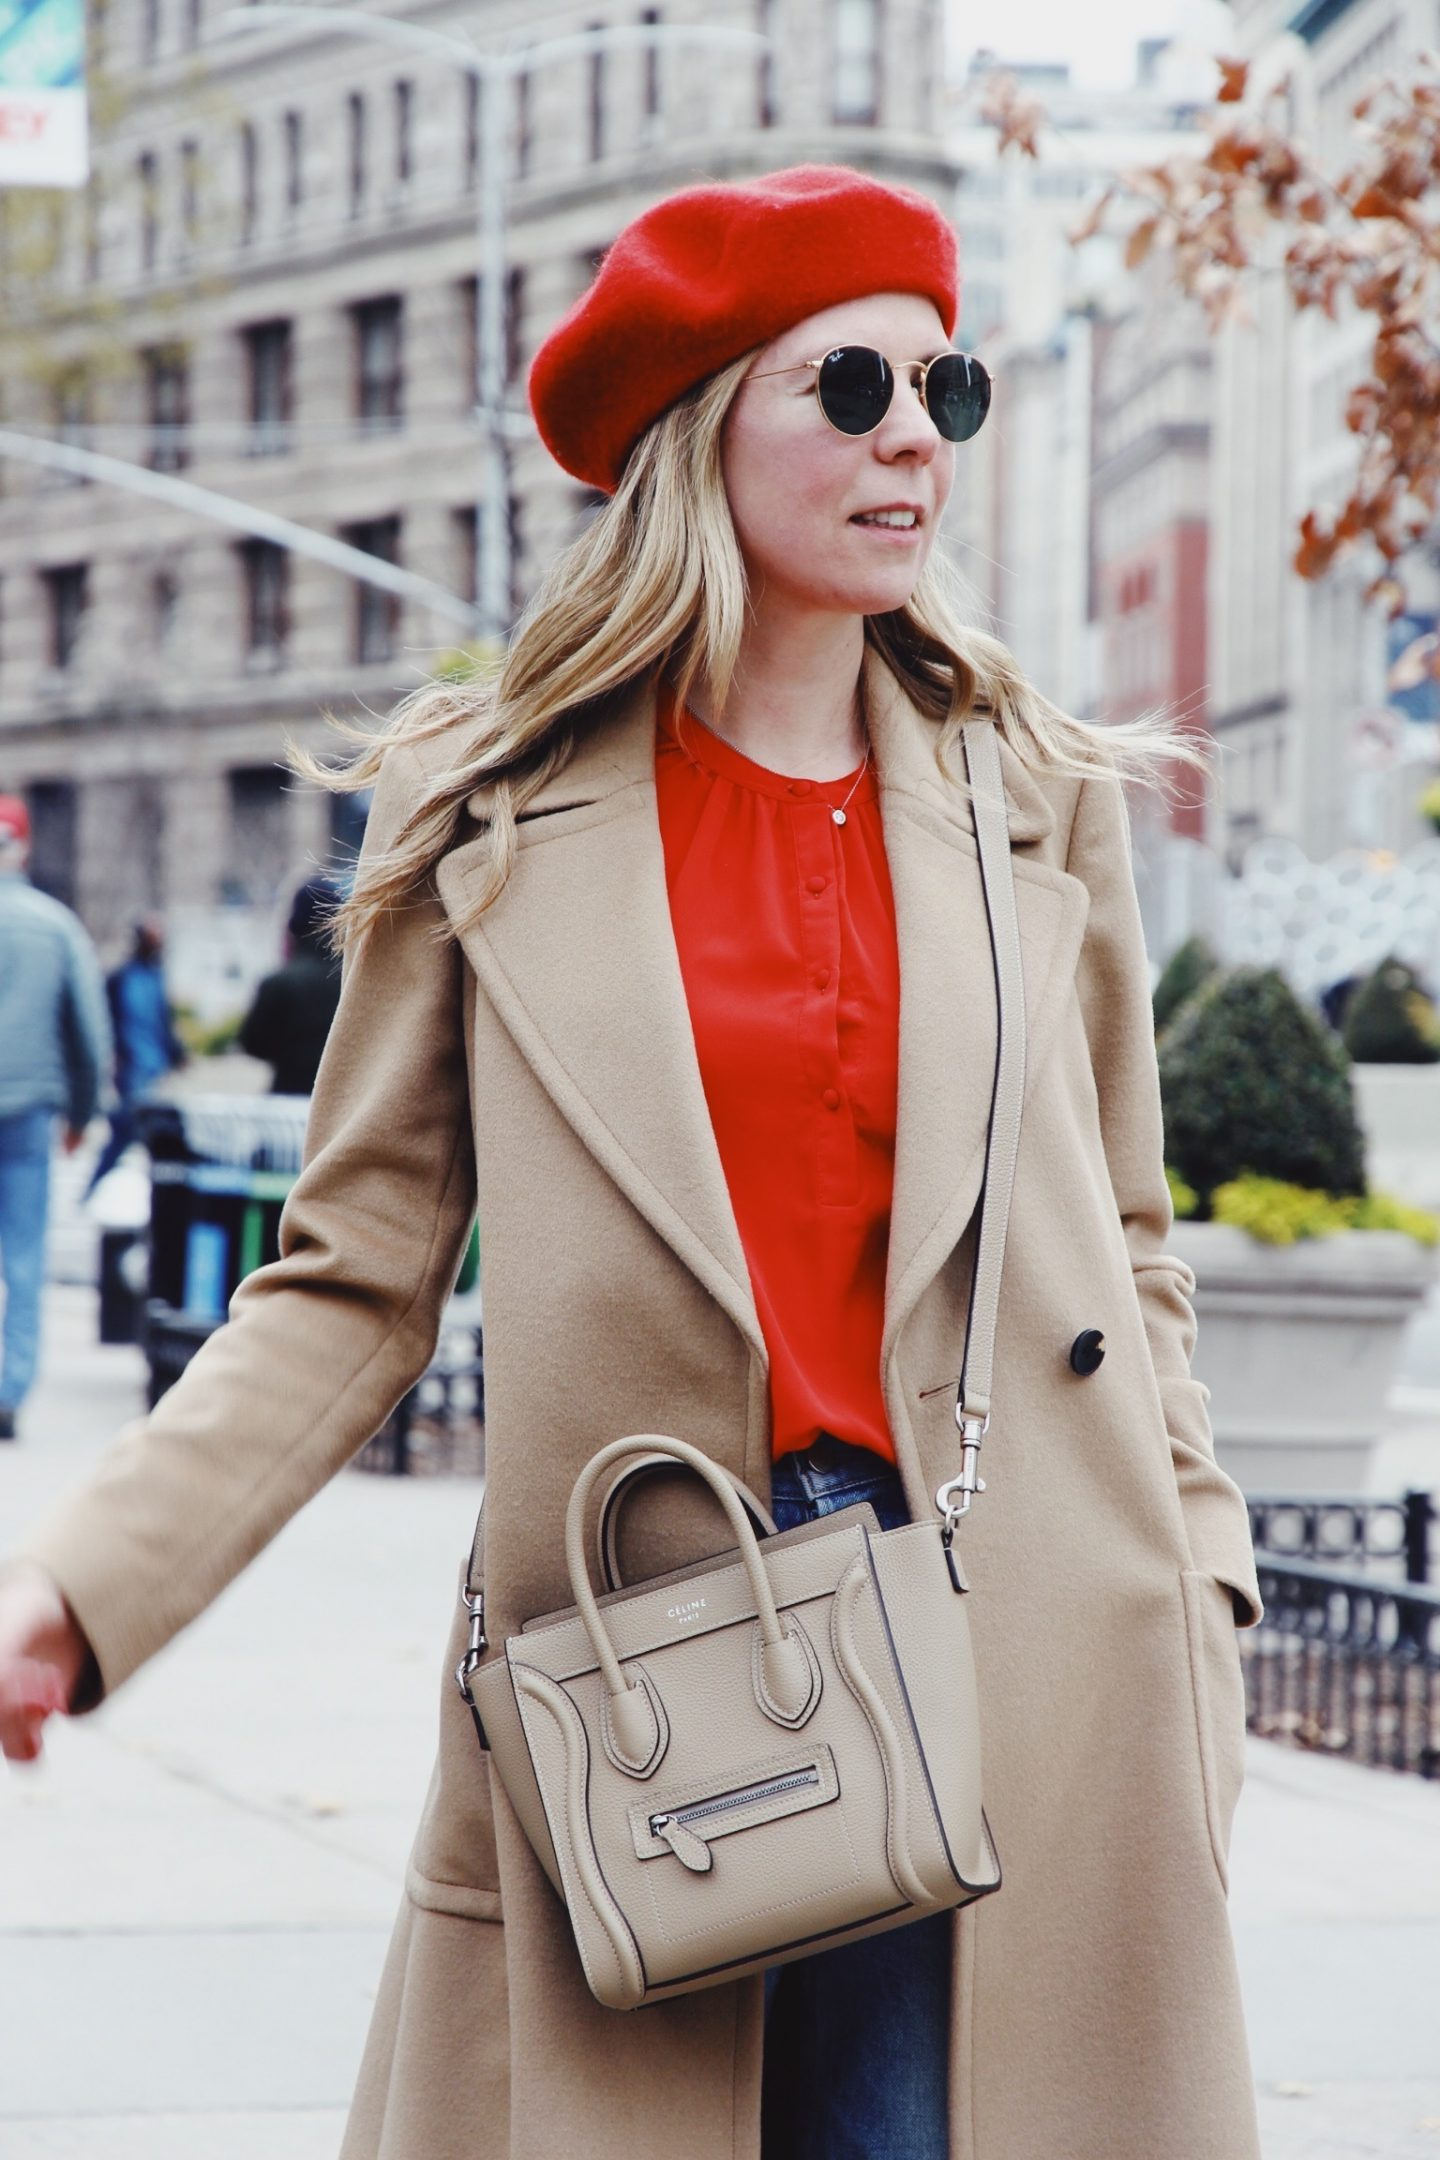 Long Camel Coat and Celine Handbag